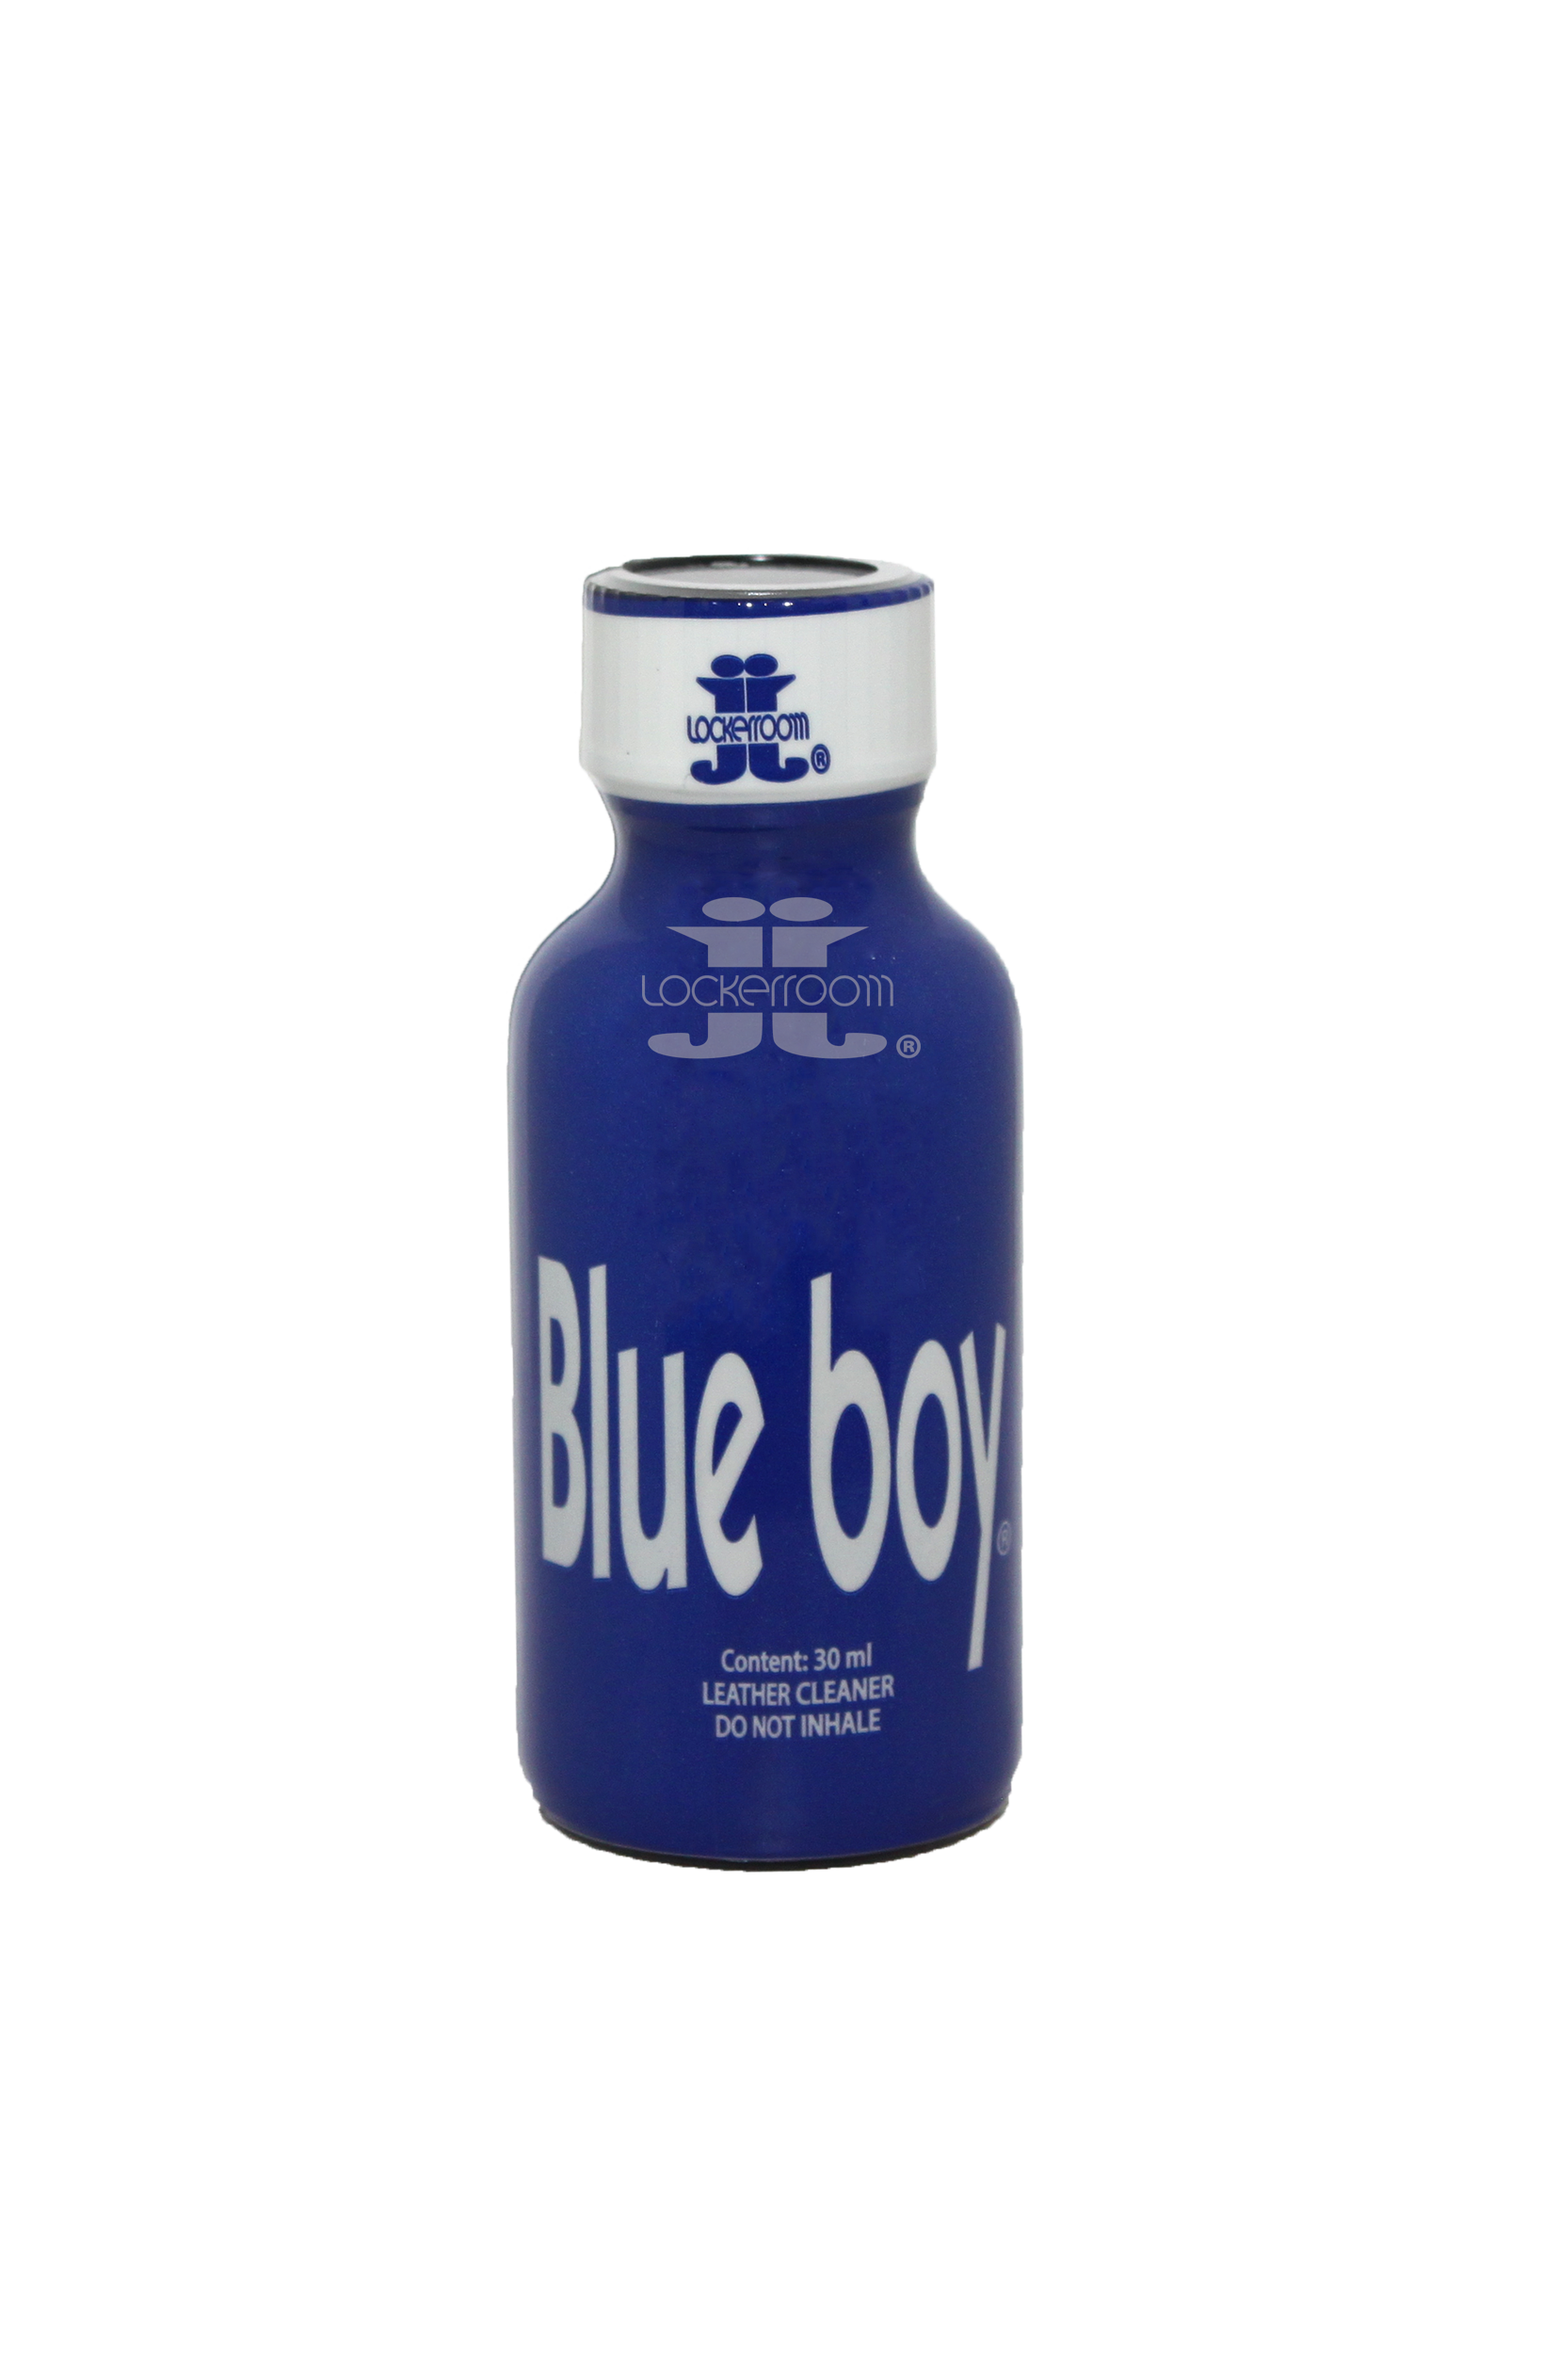 Blue Boy 30mL Bottle